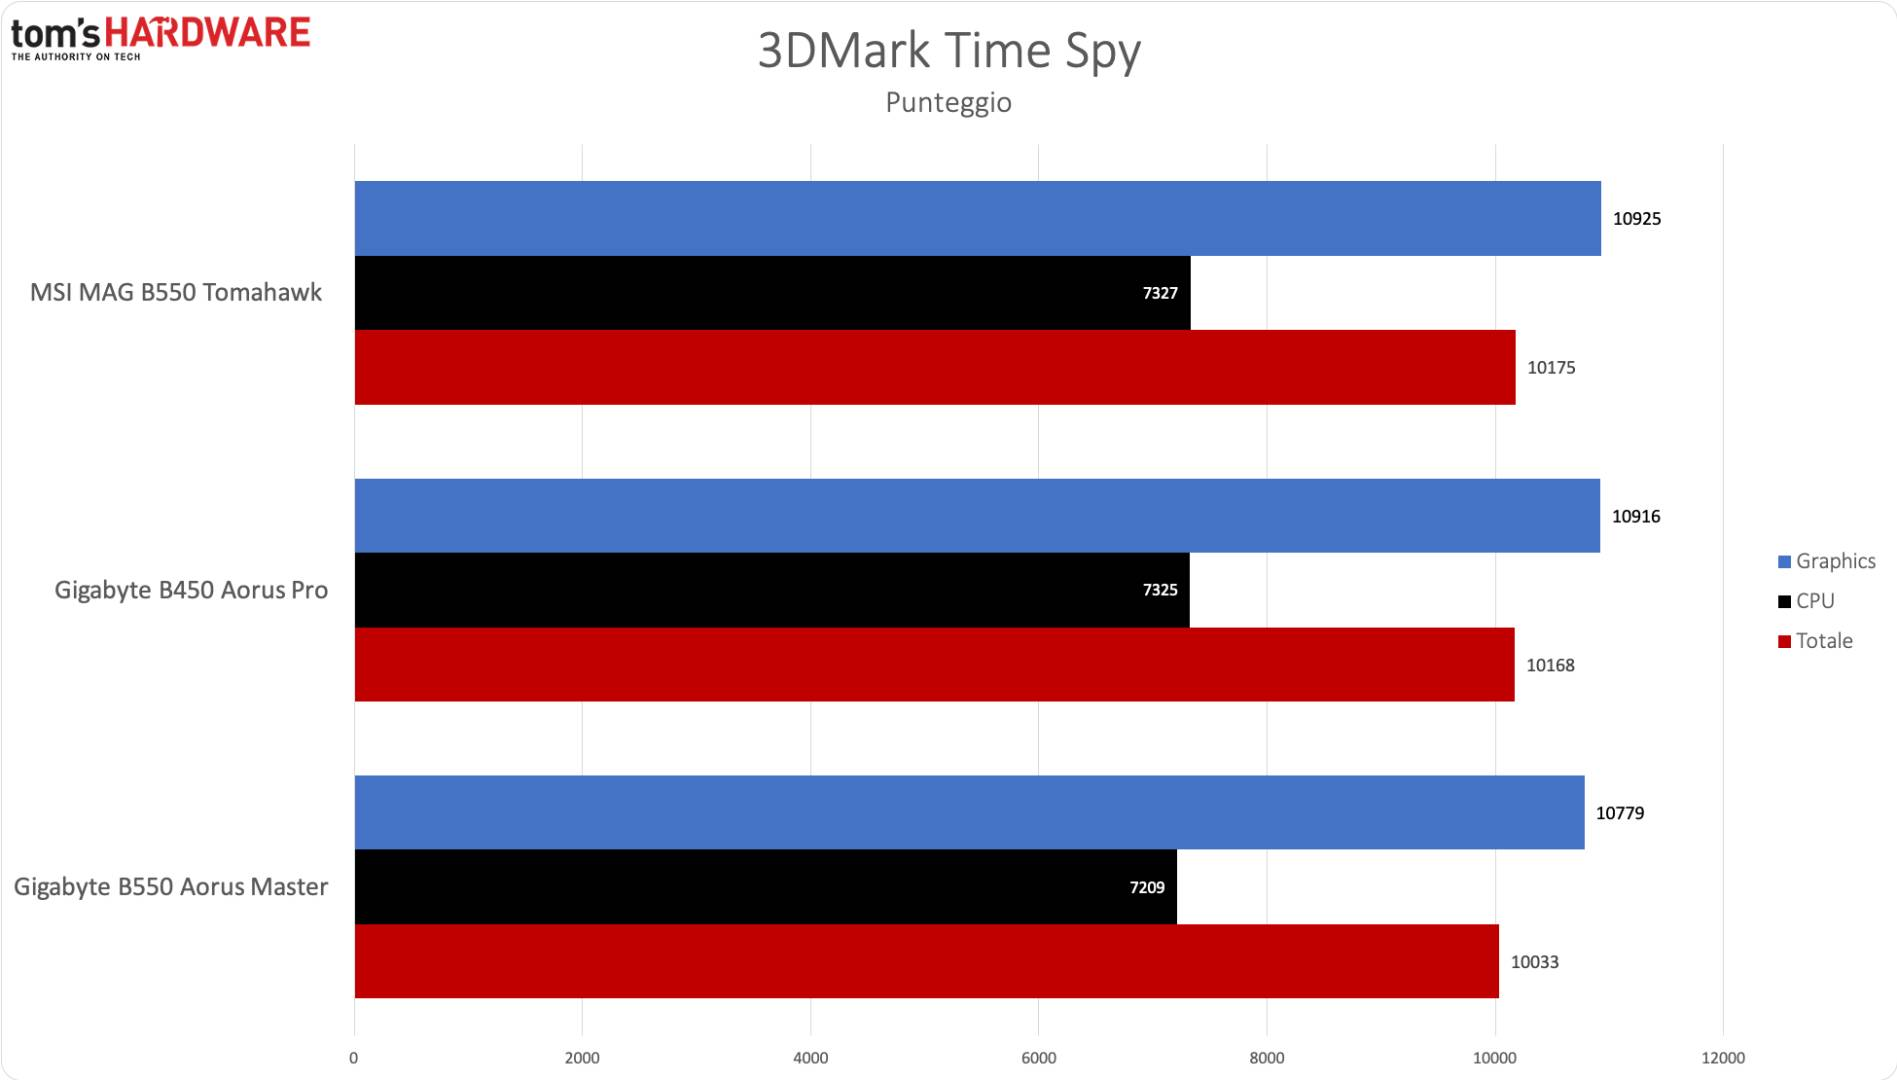 AMD B550 - 3DM time spy